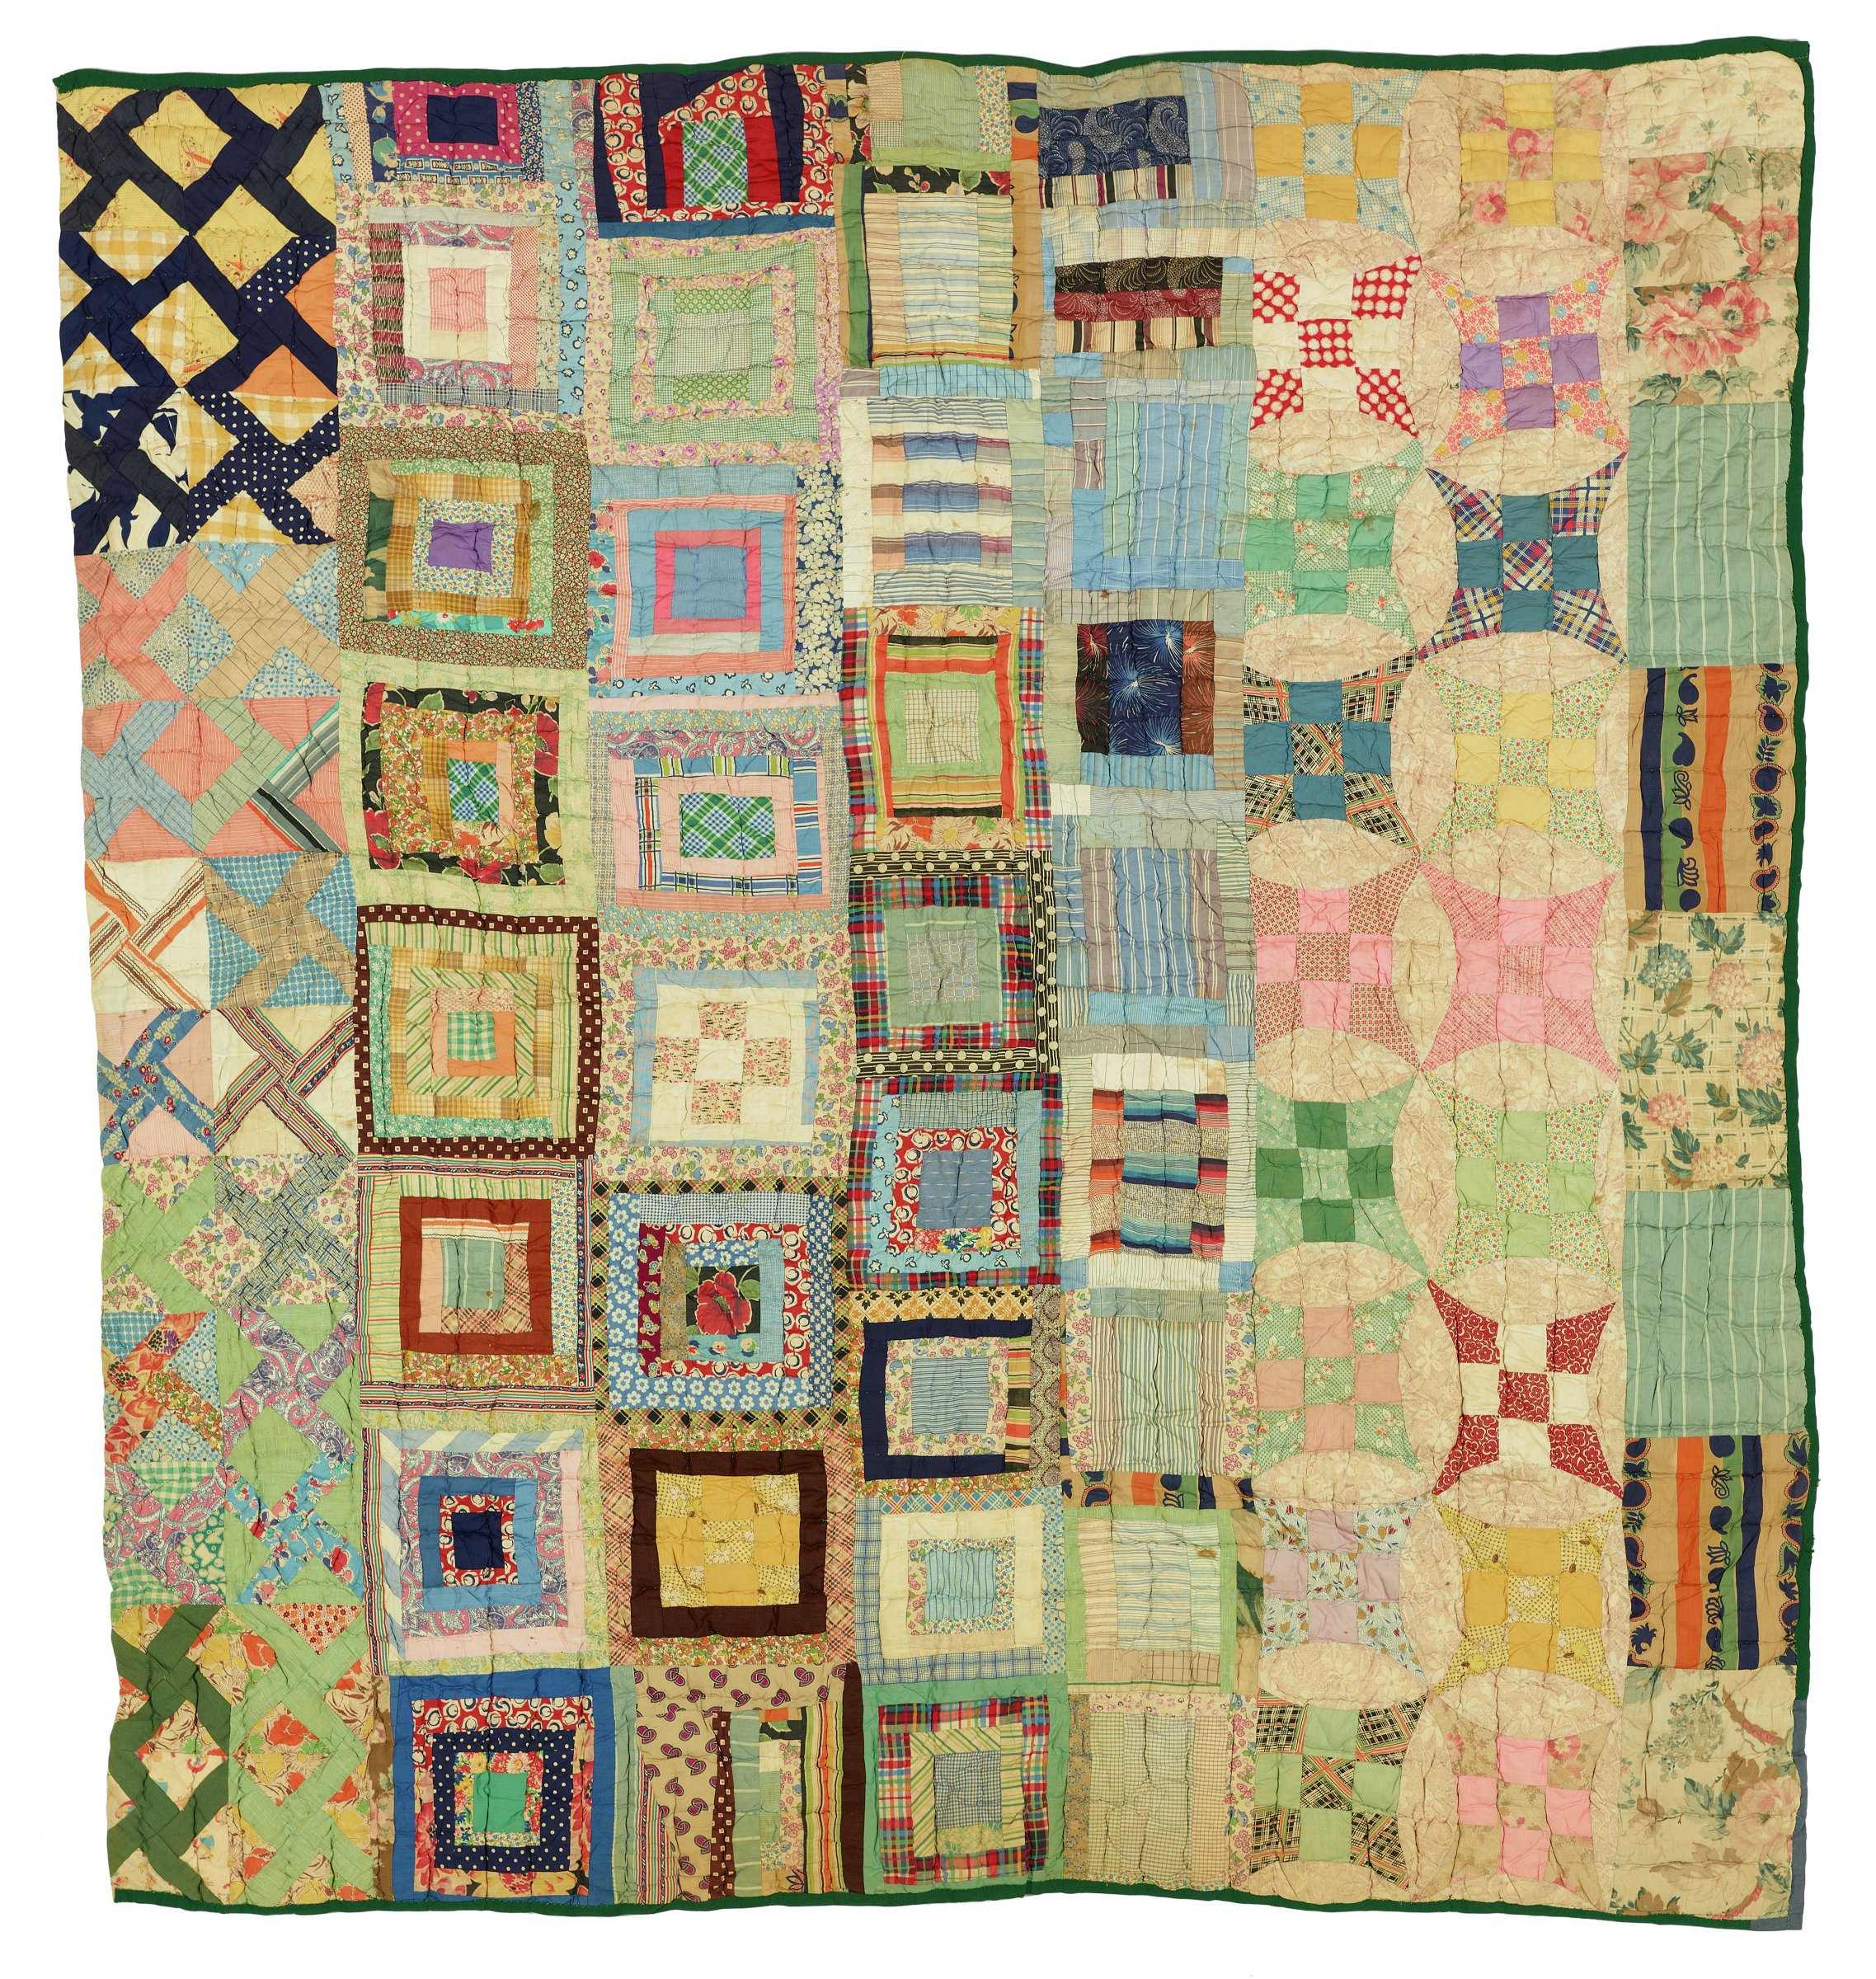 Large, roughly square quilt made of cotton feed sacks assembled in a grid pattern of 9 rows, each colorful quilt block made in a different pattern and some blocks are of different sizes, the whole a conglomeration of geometric and floral motifs in soft and subdued colors.